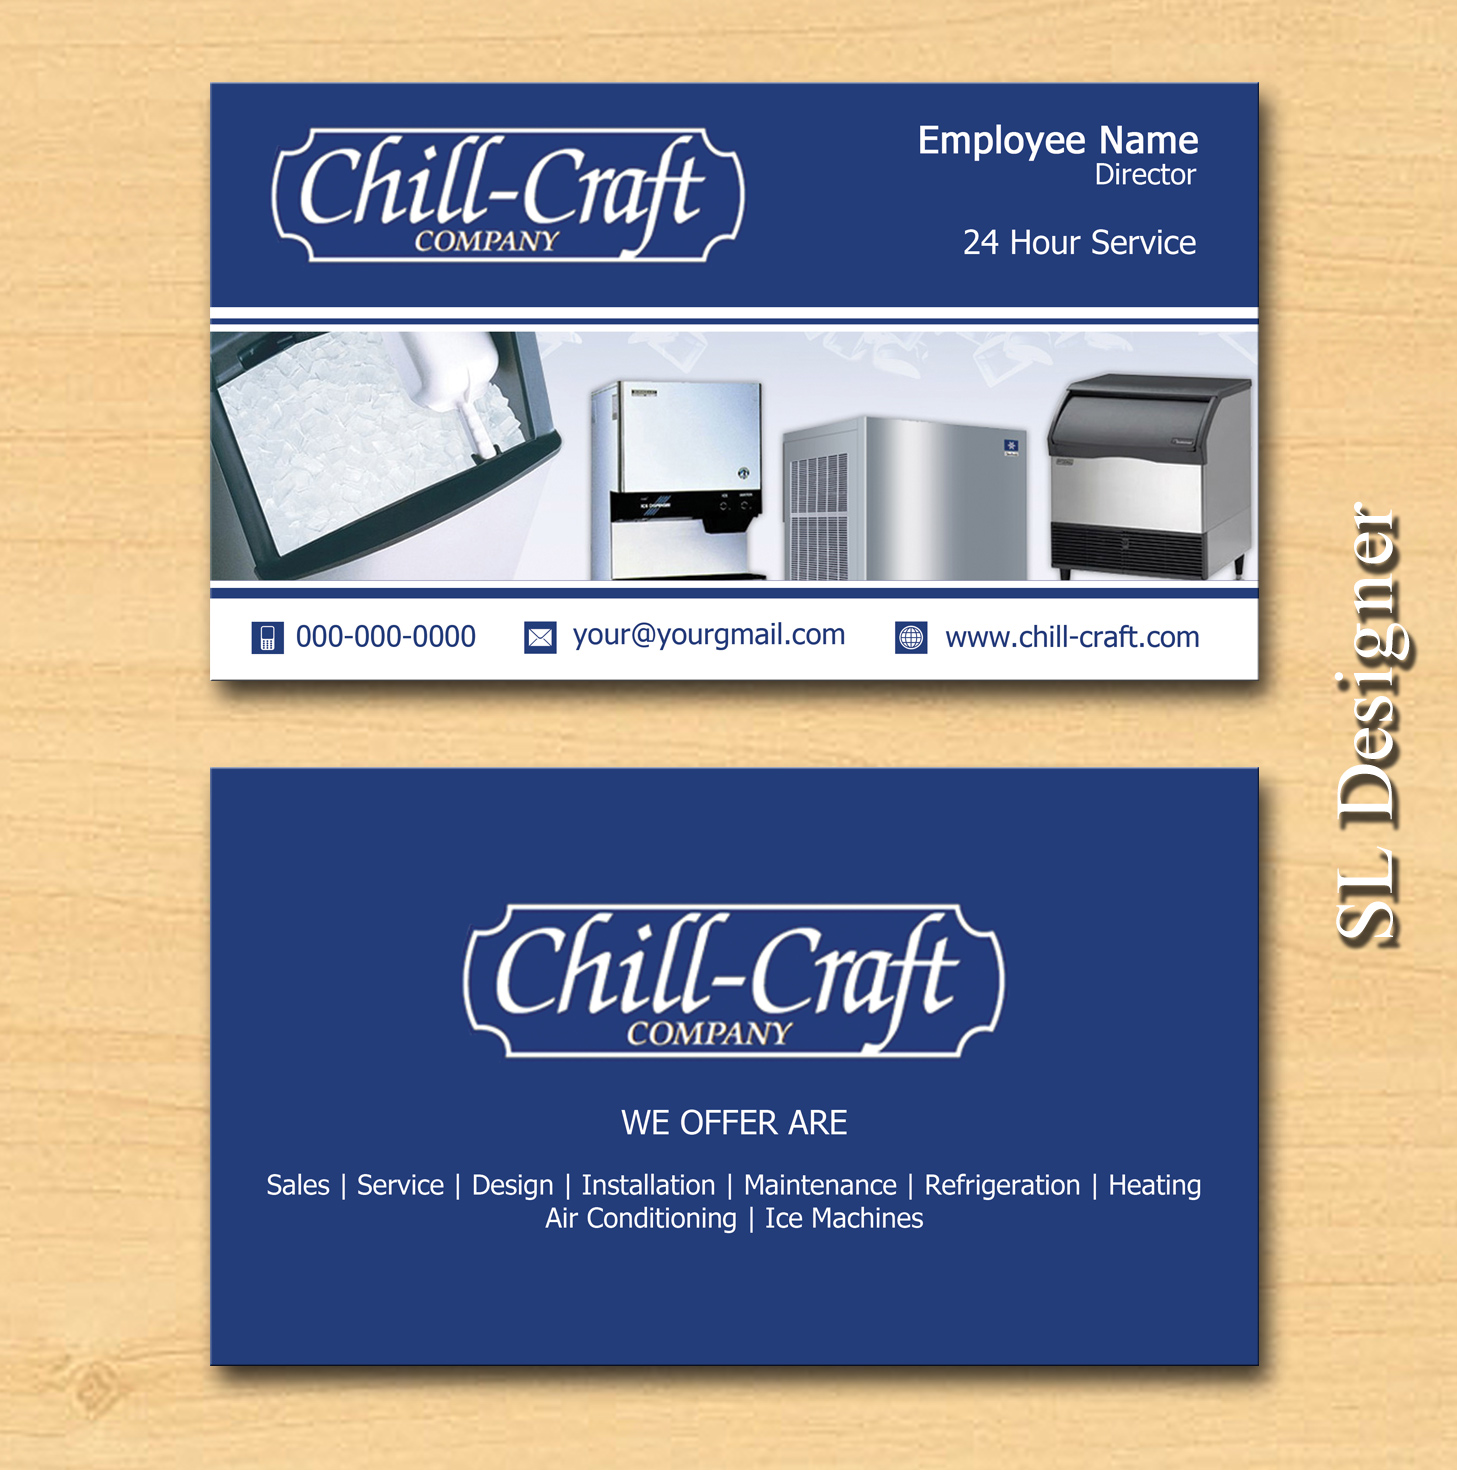 Modern, Professional Business Card Design for Chill-Craft Company ...